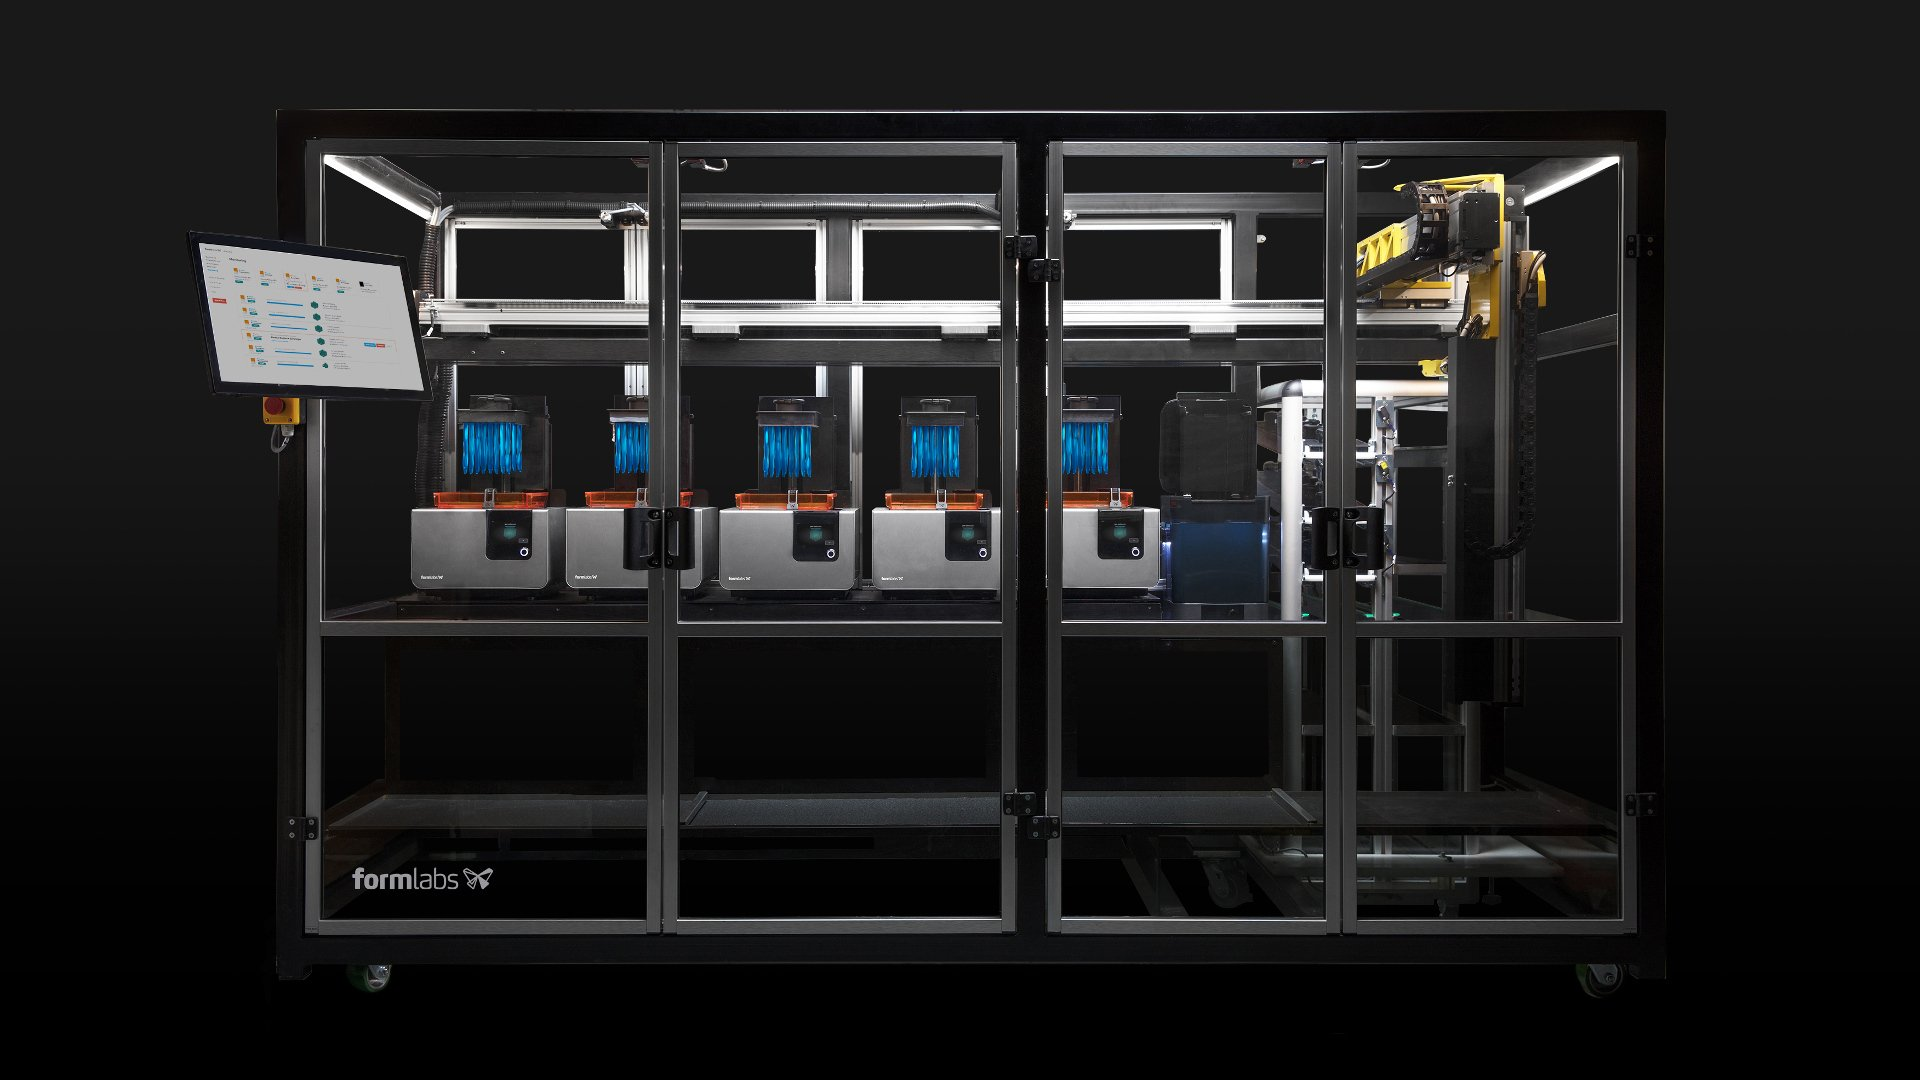 Formlabs Raises $30m in New Equity Funding | All3DP